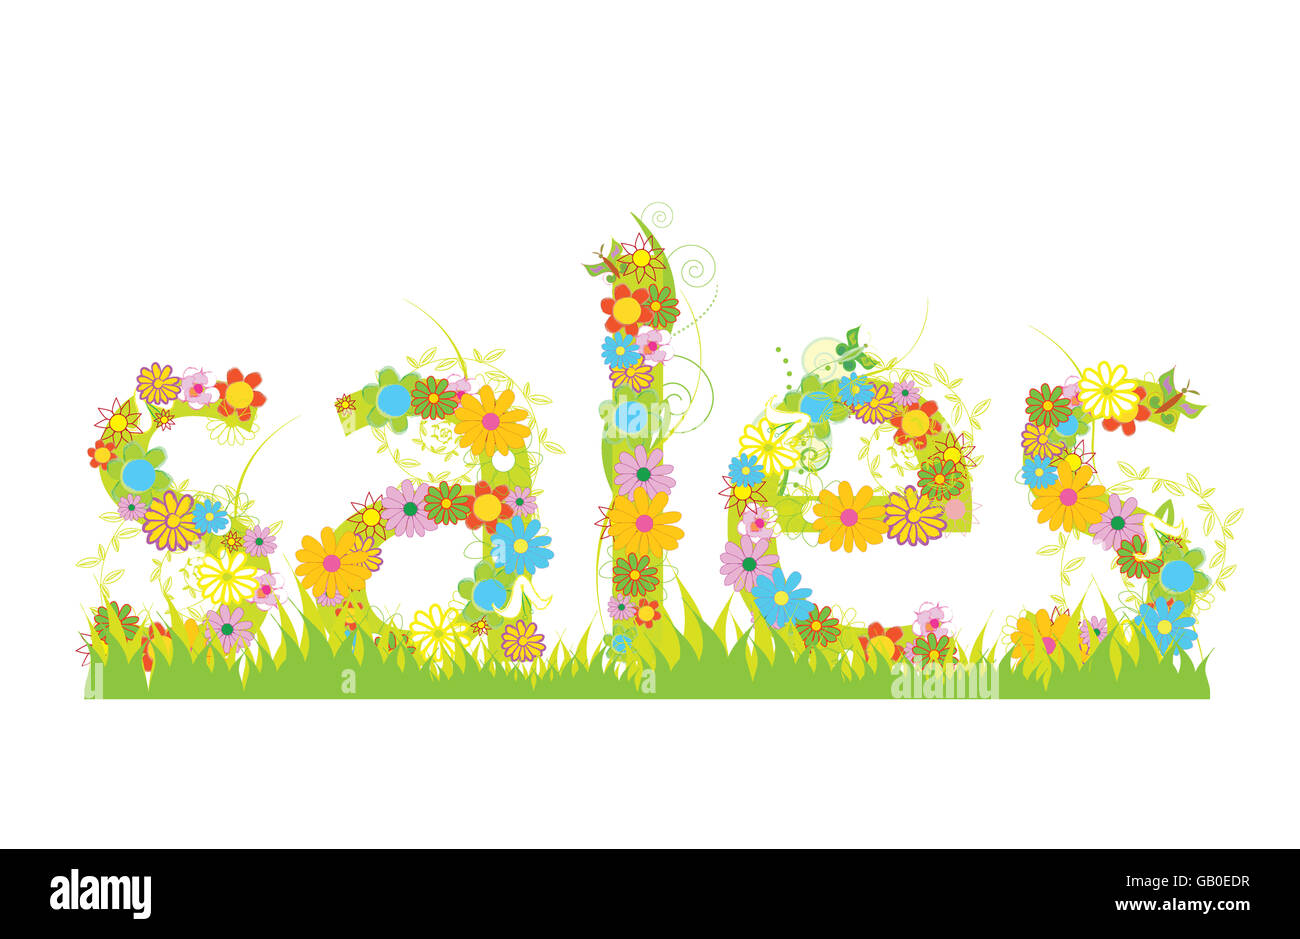 Sales letters for summer/spring sales with flowers , butterflies and grass - Stock Image